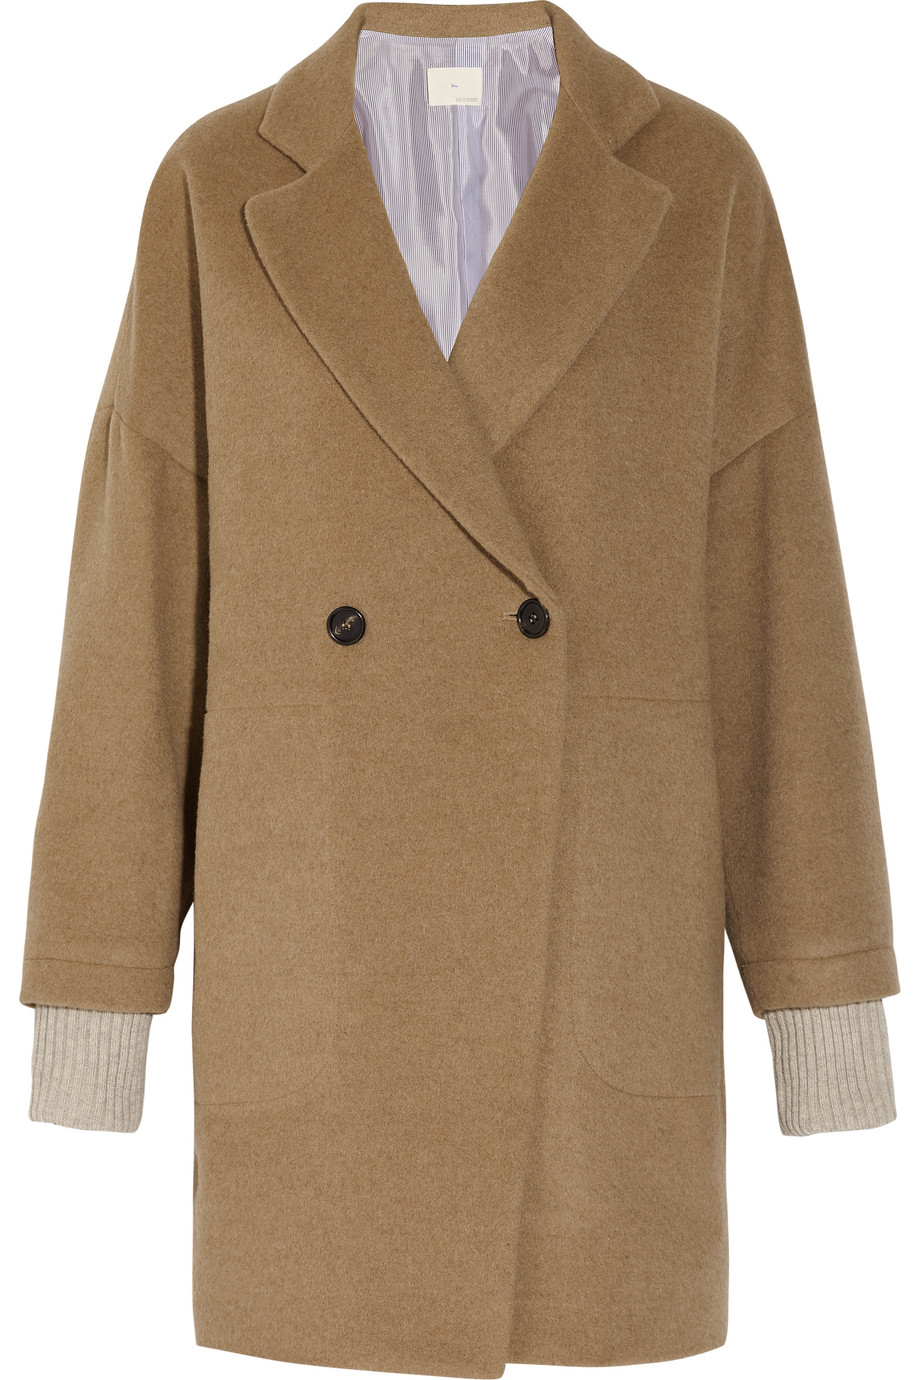 Oversized camel coat | Band of Outsiders | 65% off | THE OUTNET